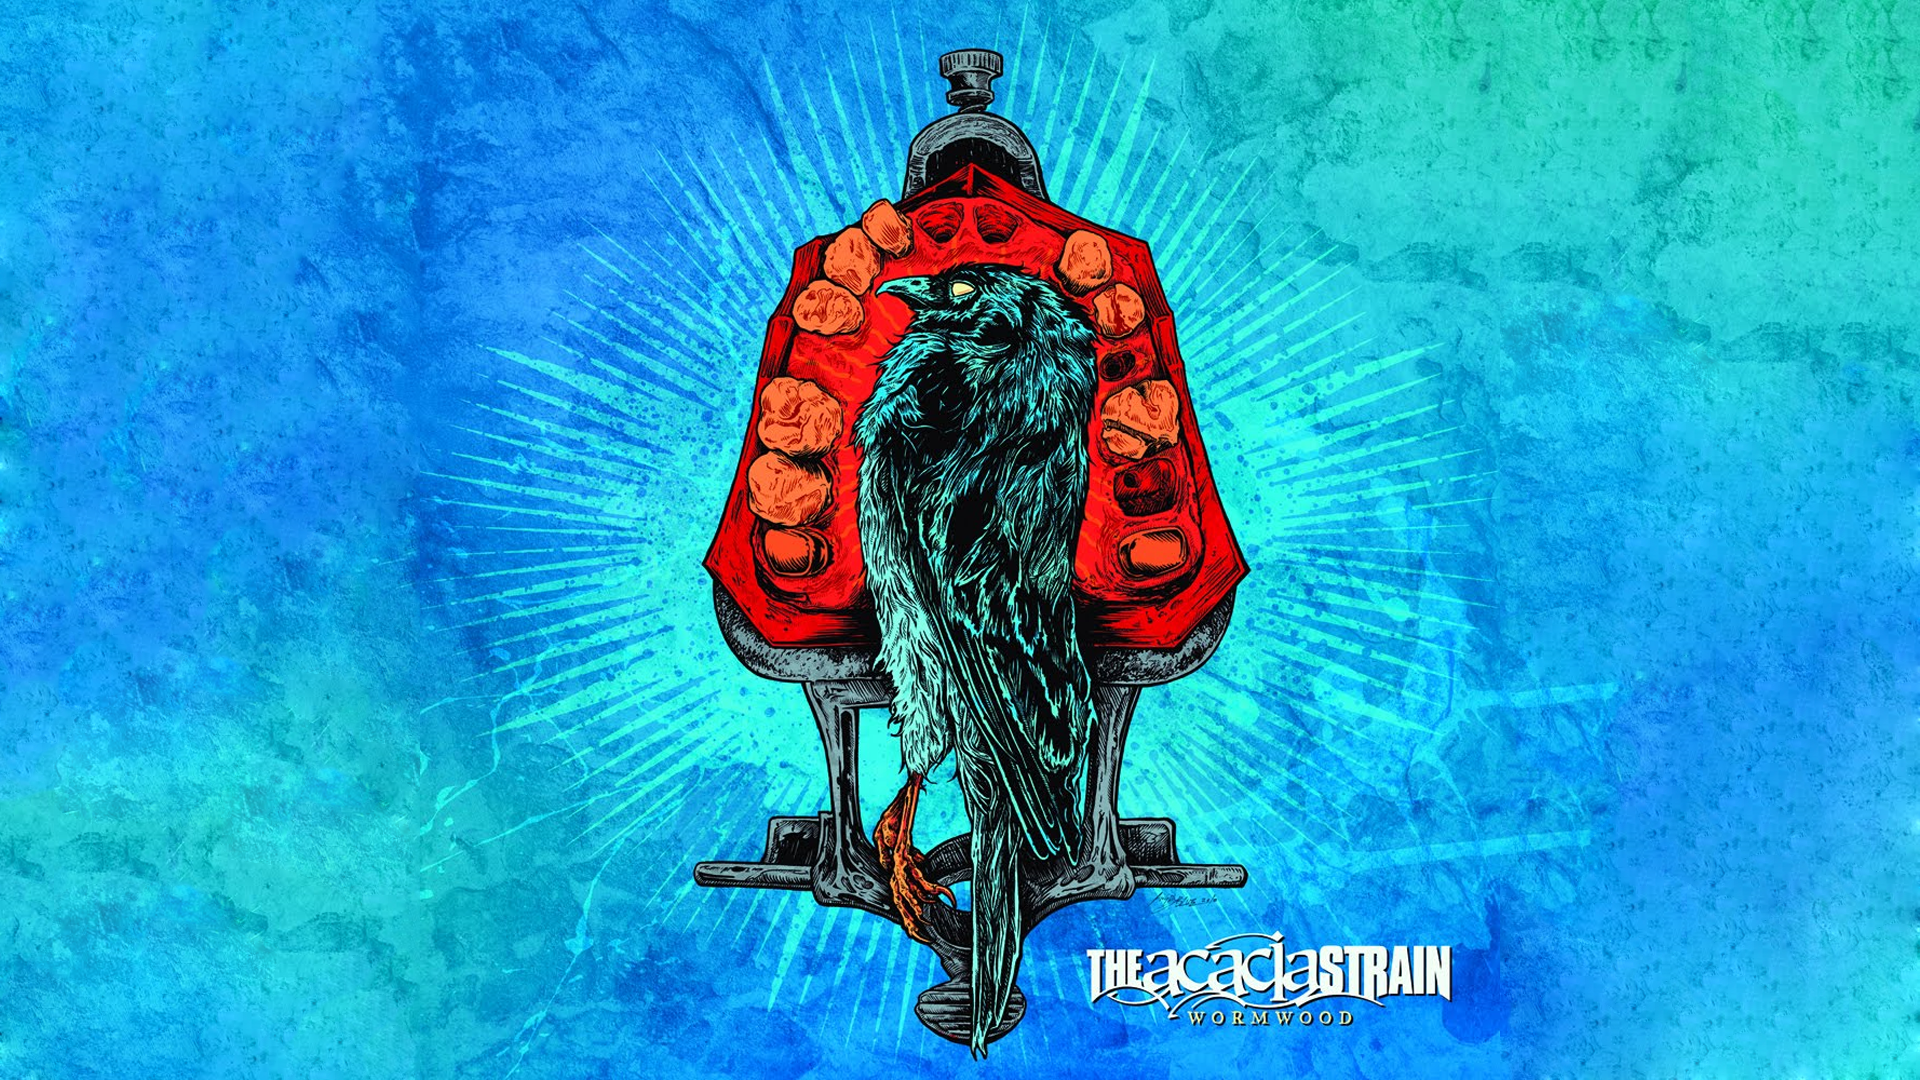 1 Acacia Strain HD Wallpapers | Backgrounds - Wallpaper Abyss